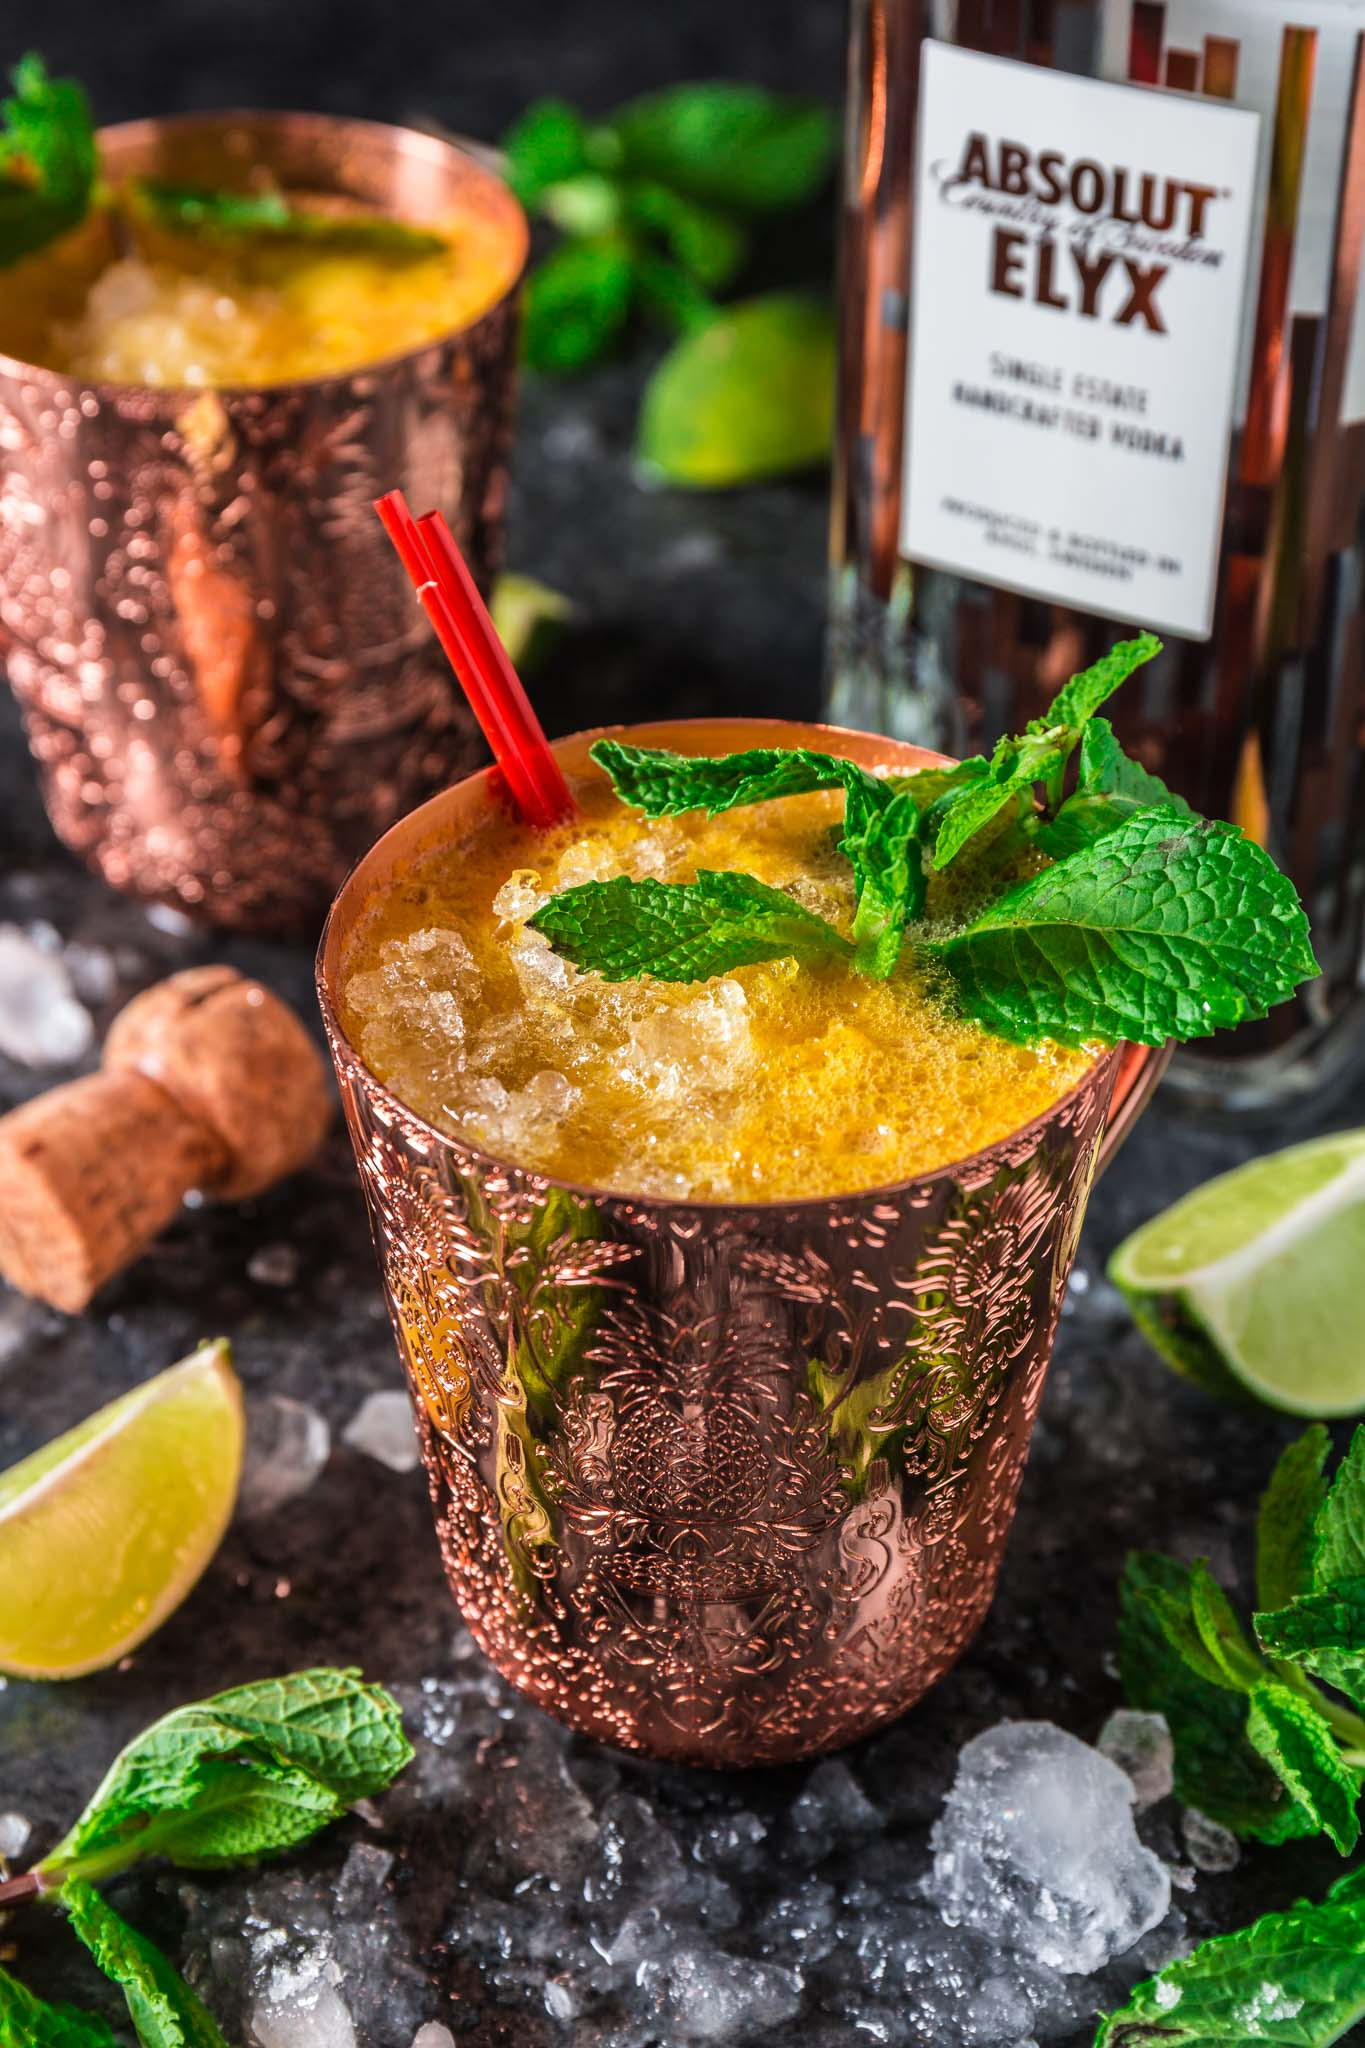 Fizzy Passion Fruit Cocktail | www.oliviascuisine.com | This holiday season, ditch the same old eggnog for a delicious and tropical premium vodka cocktail. Easy, refreshing and oh so luxurious! (Recipe and food photography by @oliviascuisine.)